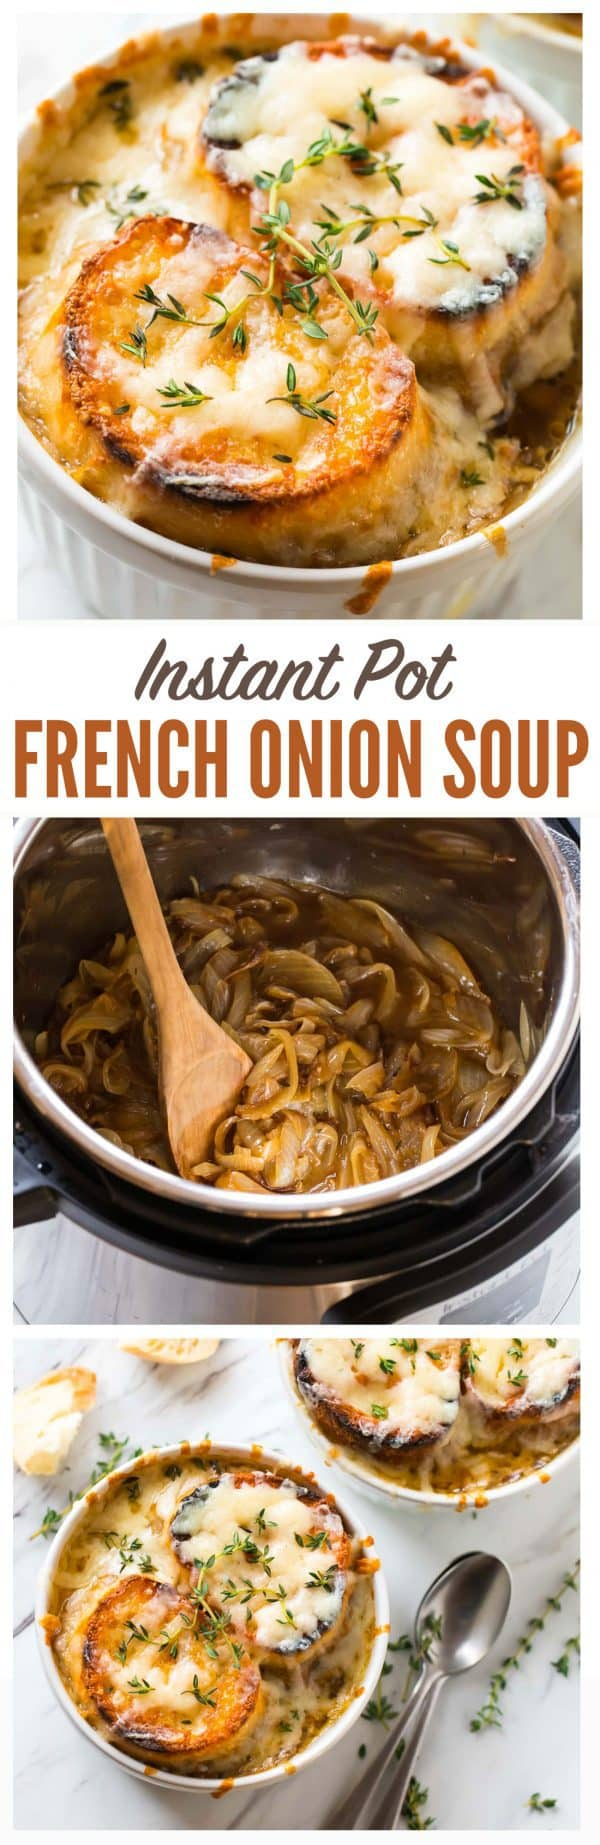 Instant Pot BEST French Onion Soup! Classic French onion soup recipe that tastes like Julia Child and Ina Garten recipes but is easy and more healthy! The pressure cooker makes it quick and you'll love all that cheese on top! #instantpot #frenchonionsoup #recipe #soup